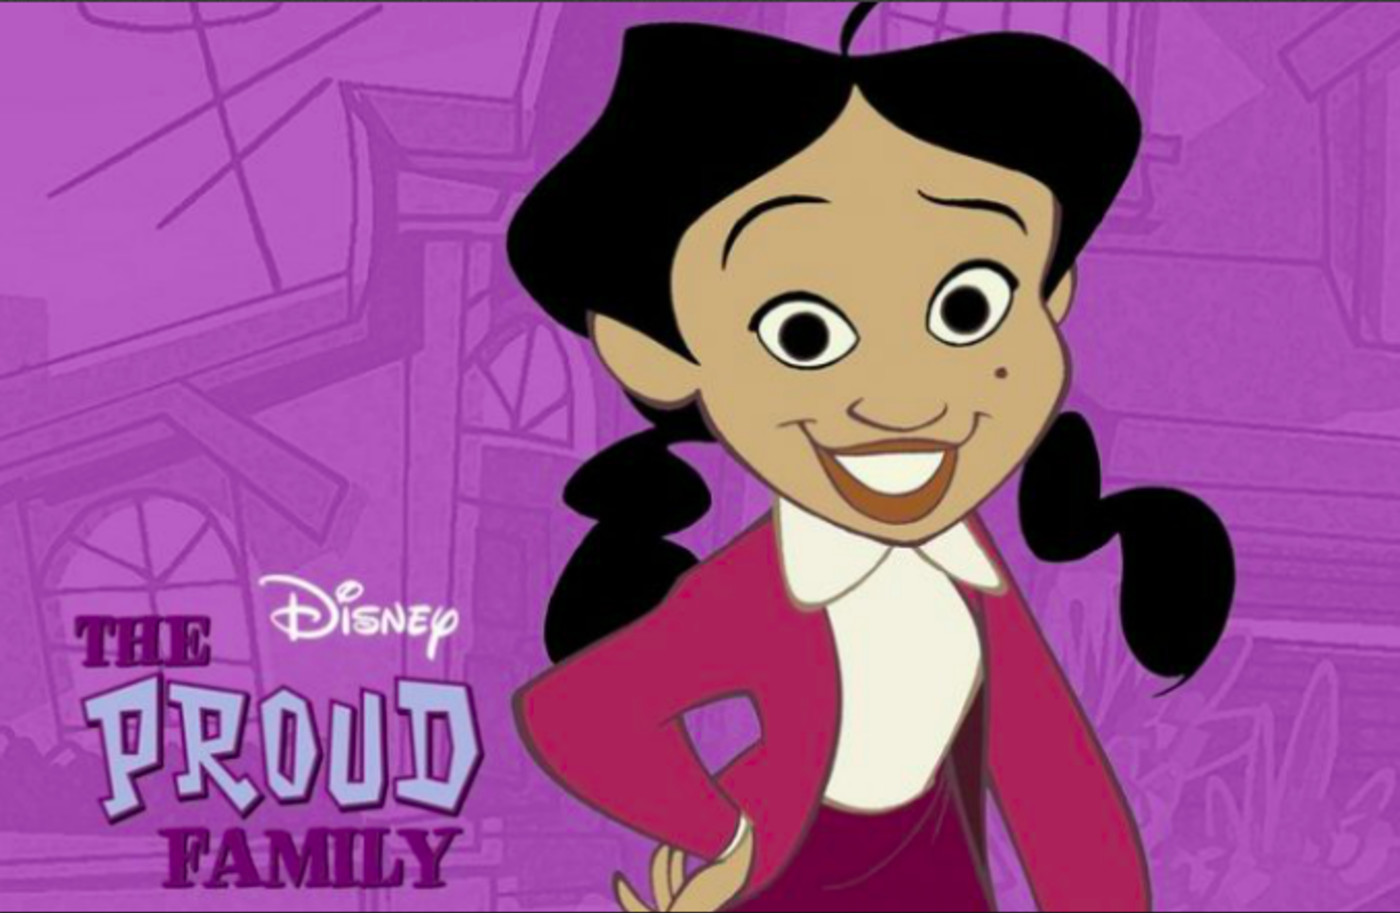 Penny Proud from 'The Proud Family'